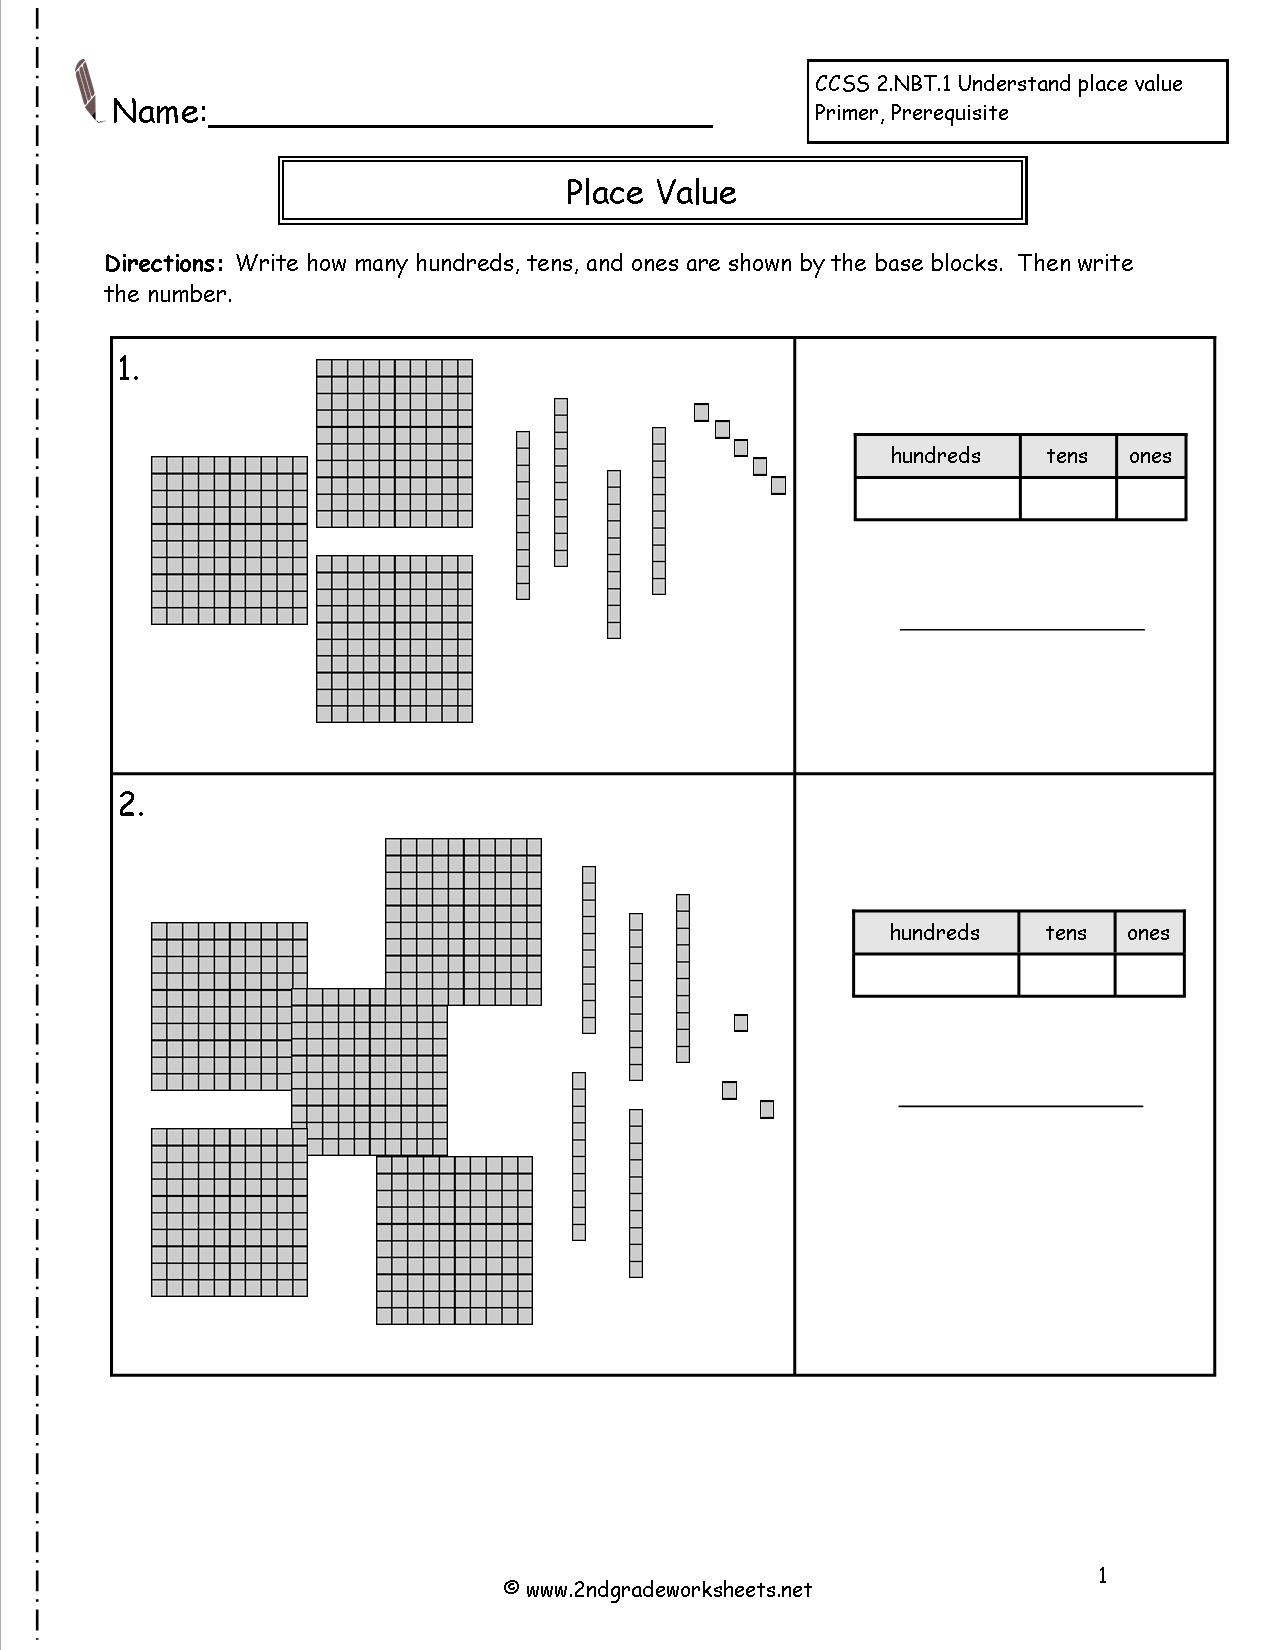 Second Grade Place Value Worksheets | Free Printable Base Ten Block Worksheets